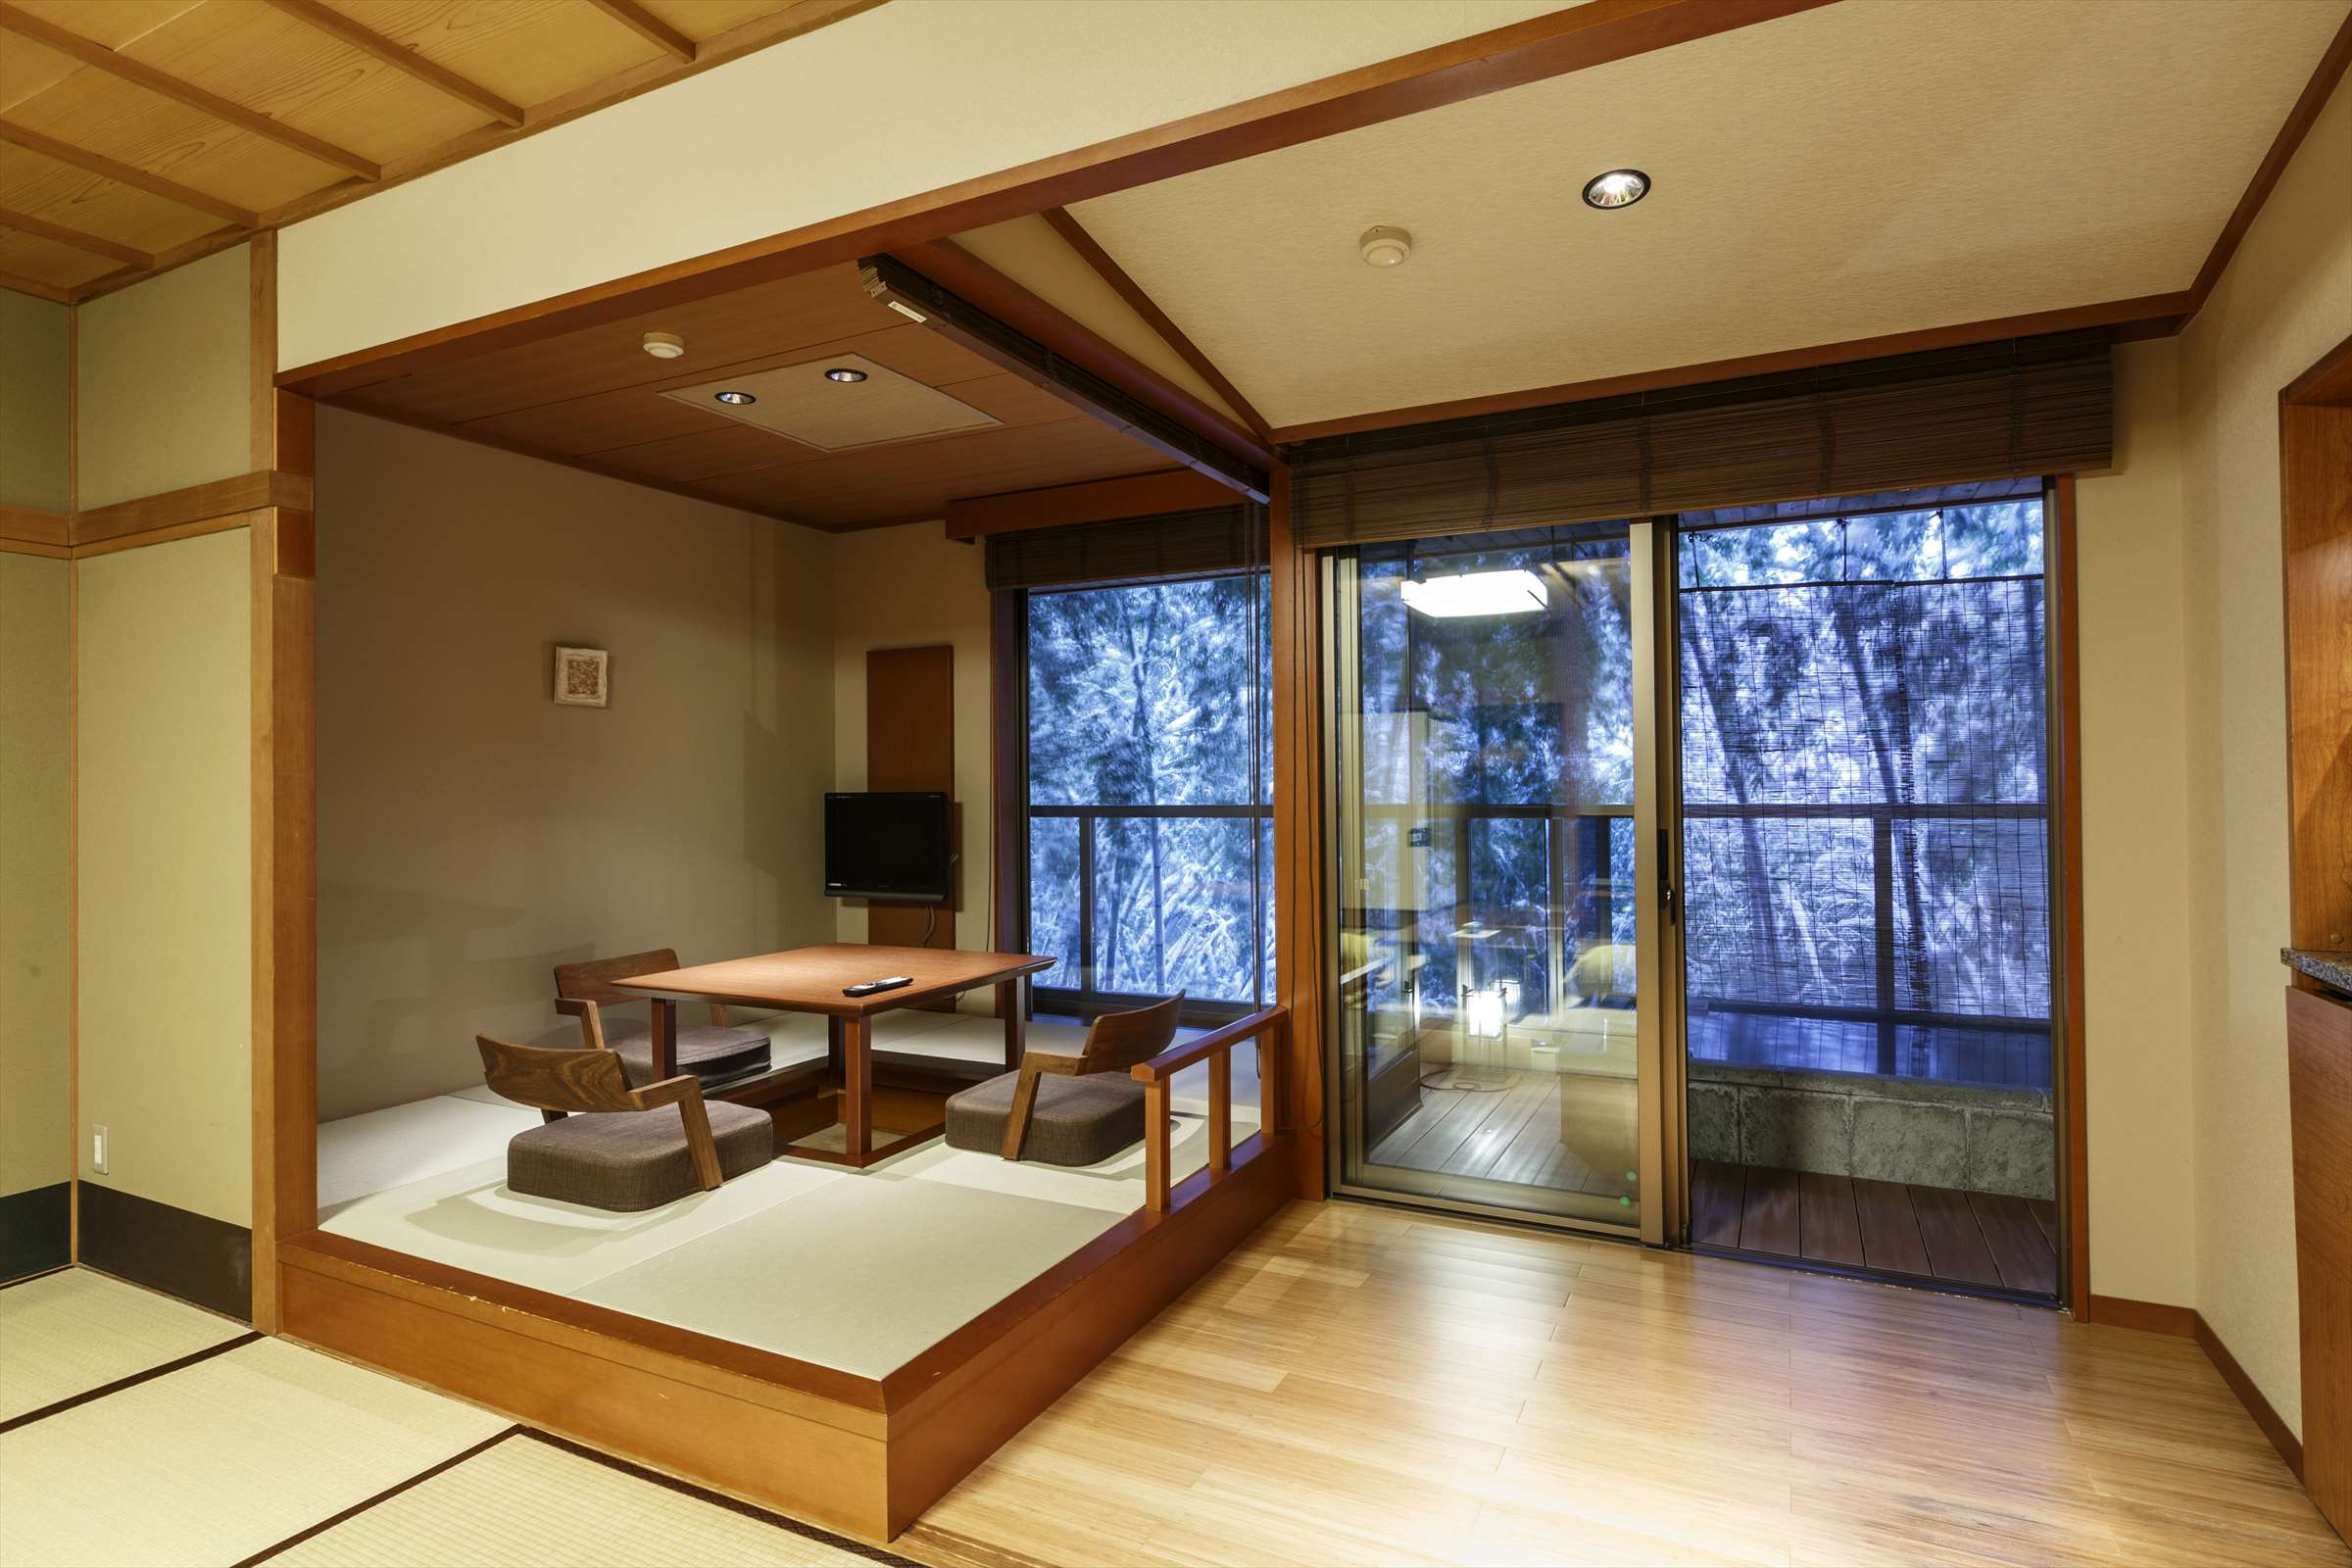 Japanese Style Room with Outdoor Bath + Hori Kotatsu